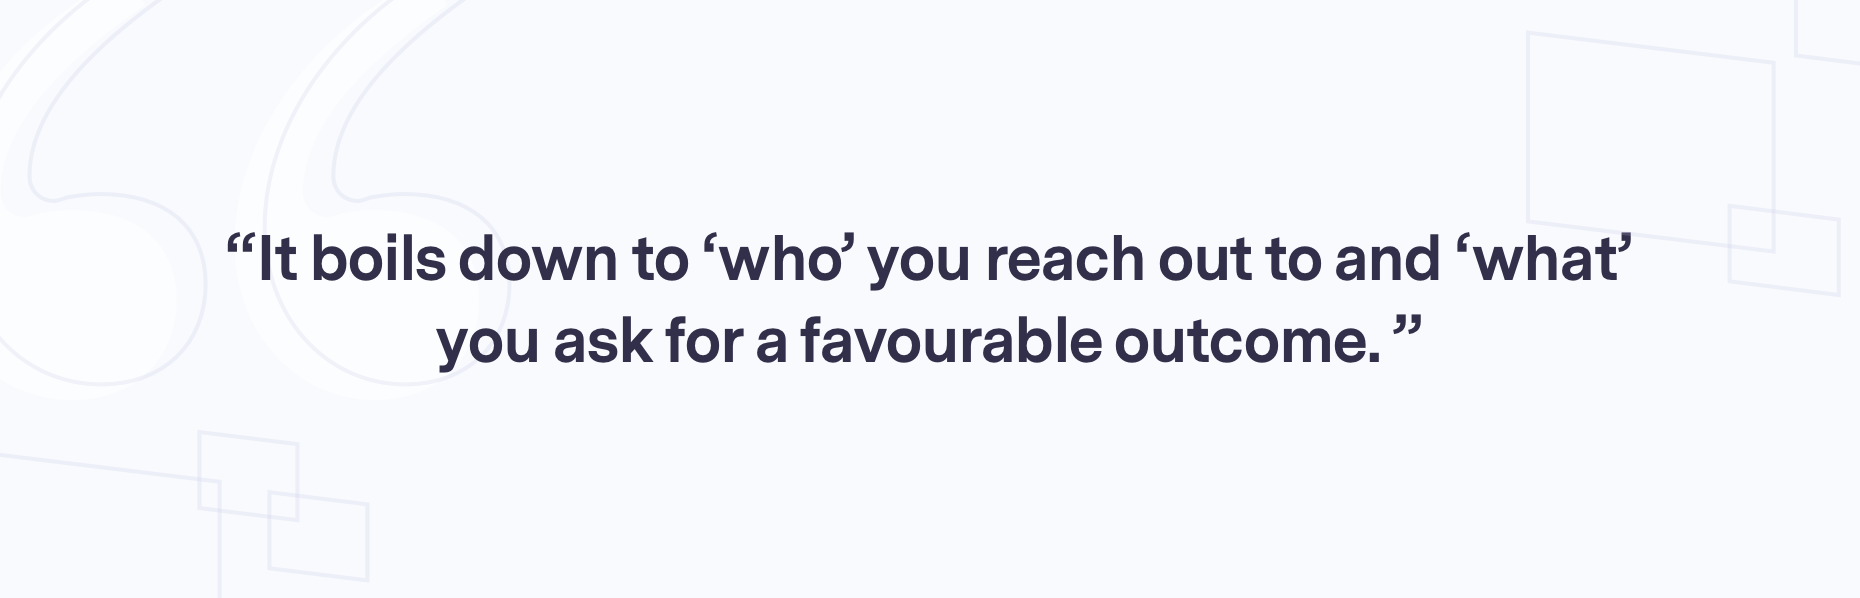 'Who' you reach out to and 'what' you ask is important